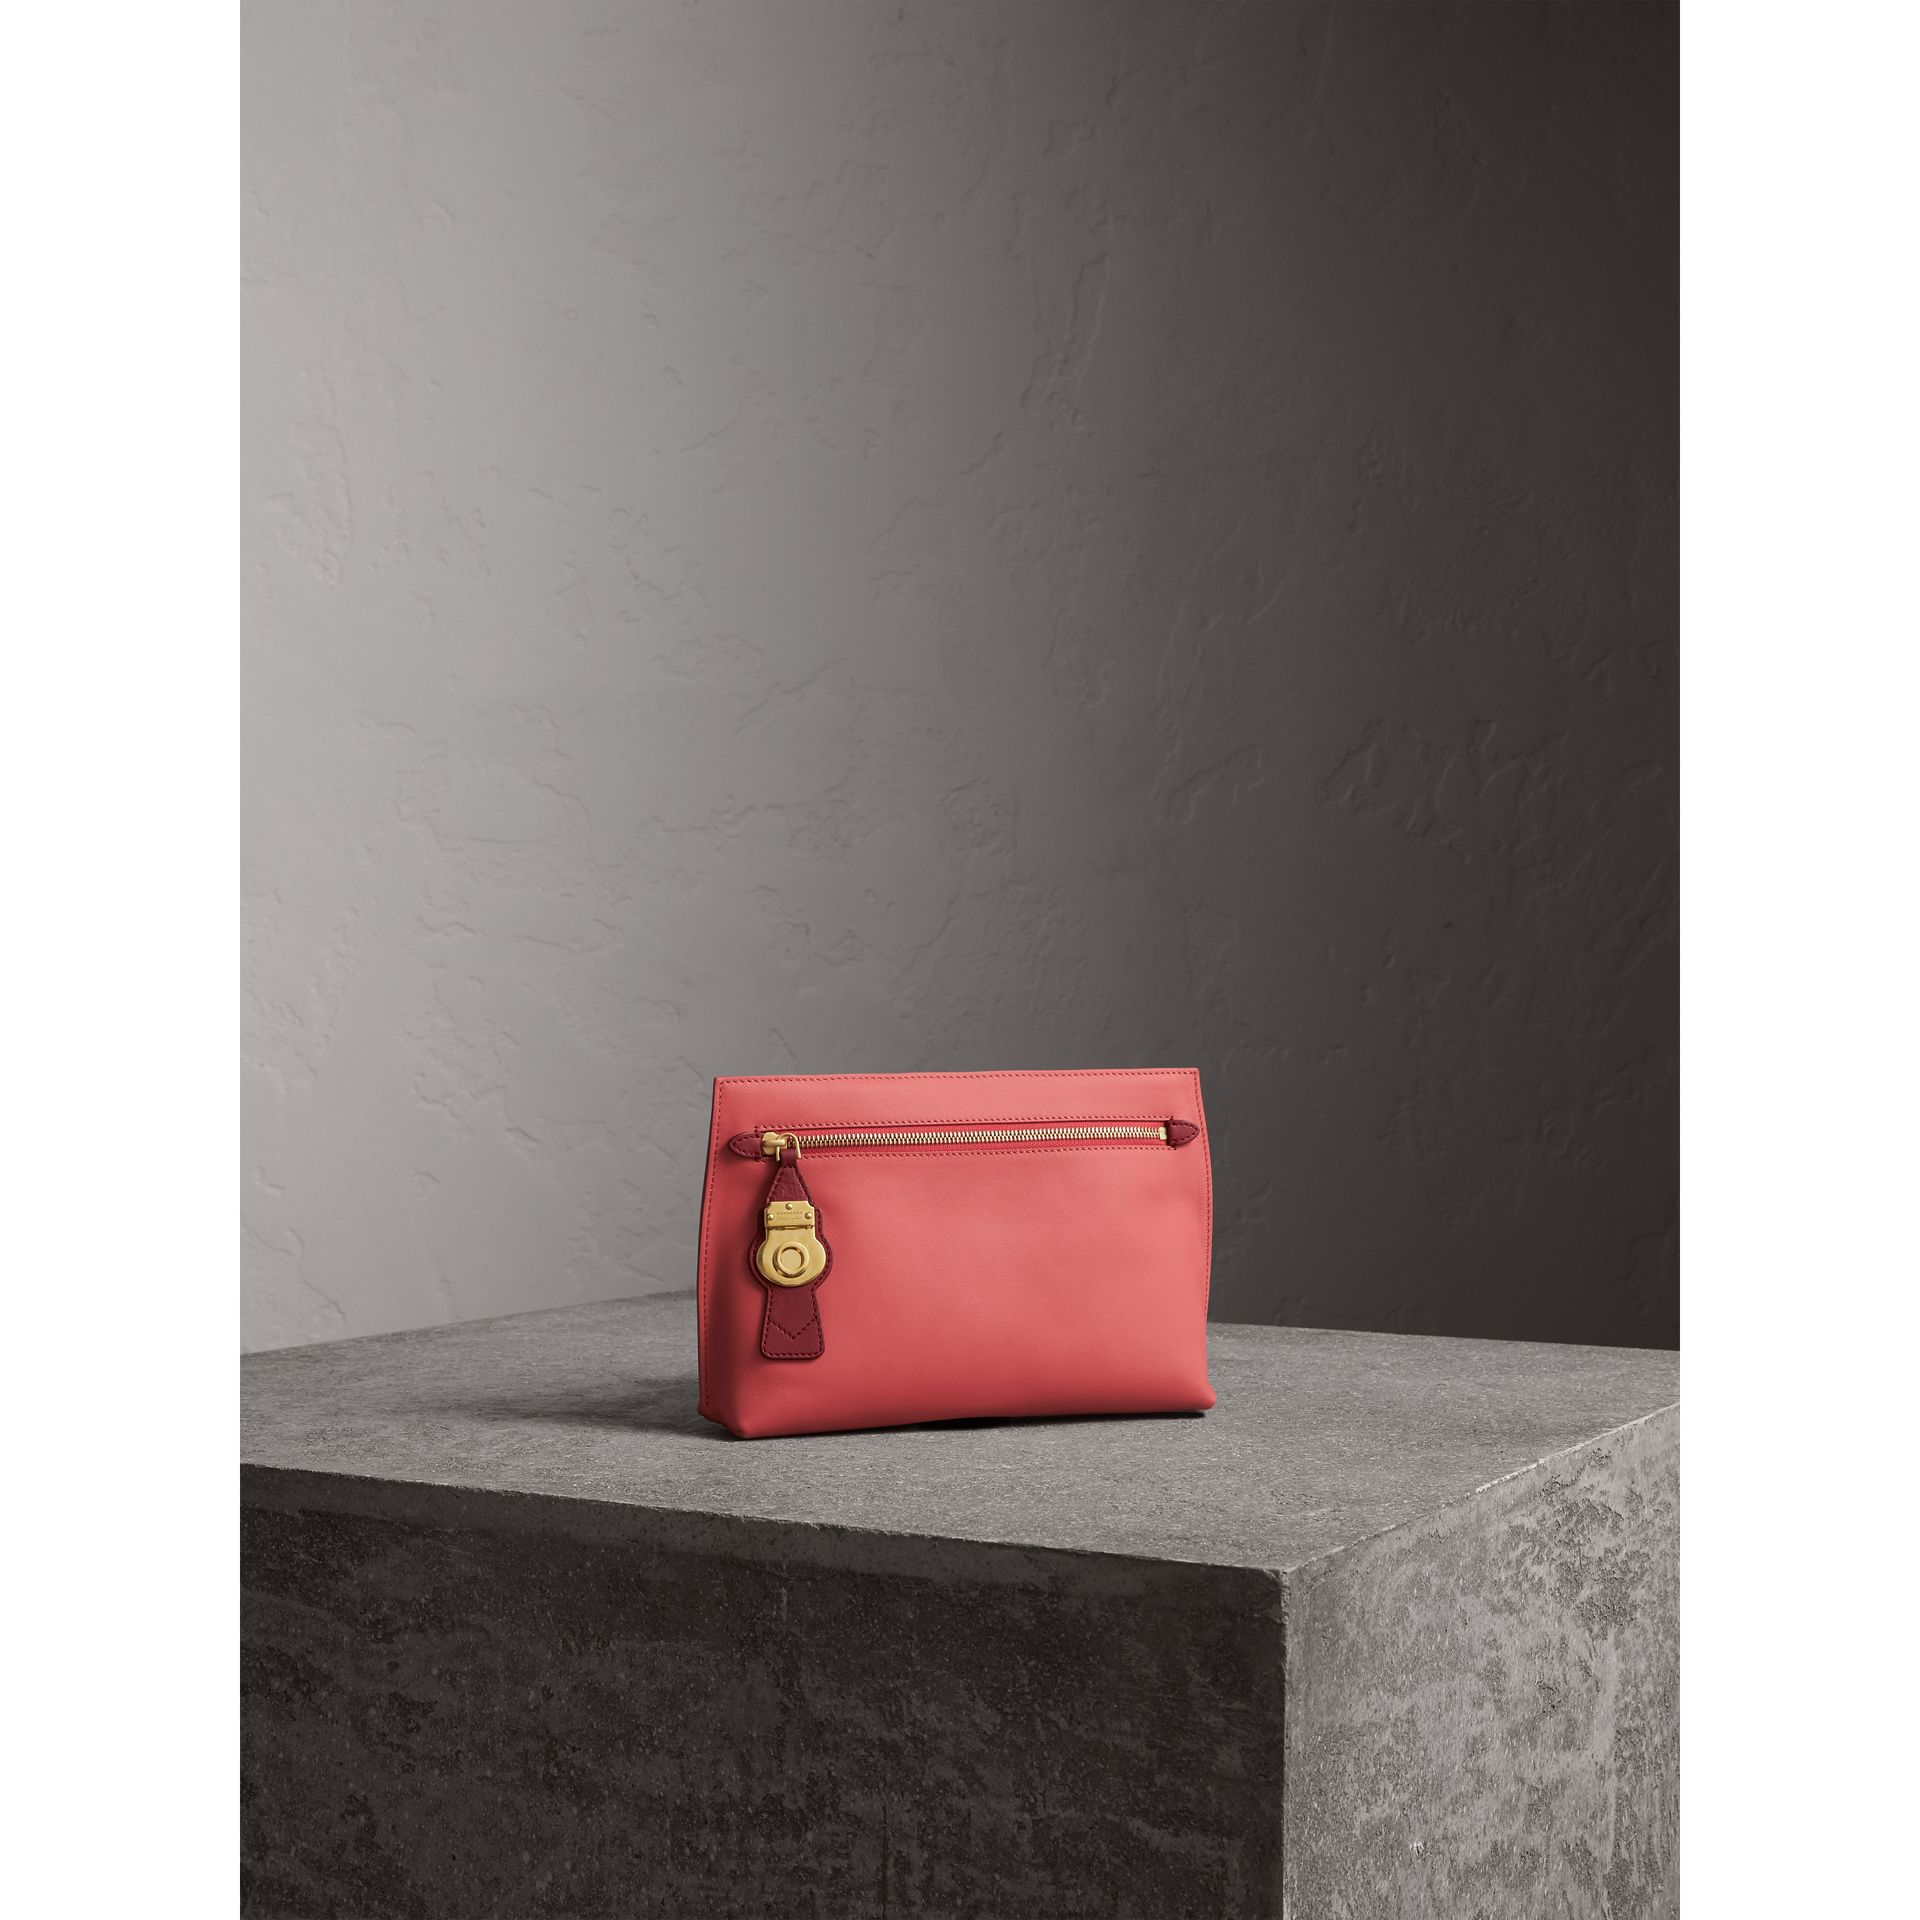 Two-tone Trench Leather Wristlet Pouch in Blossom Pink/antique Red - Women | Burberry United Kingdom - gallery image 7